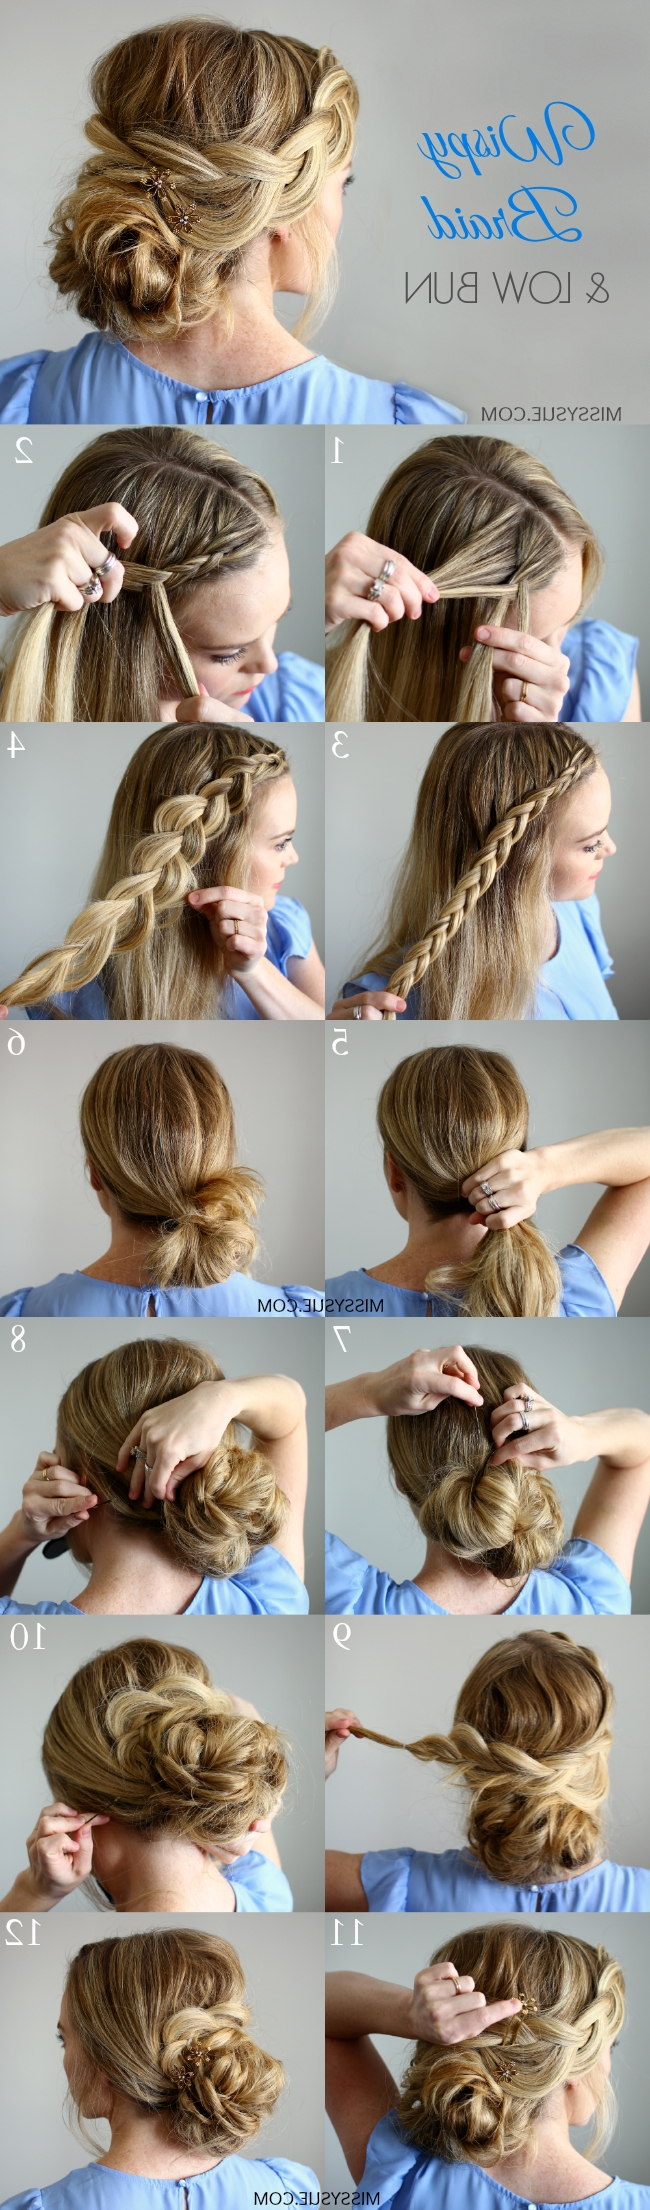 Half Up Double Fishtail French Braids (View 11 of 20)